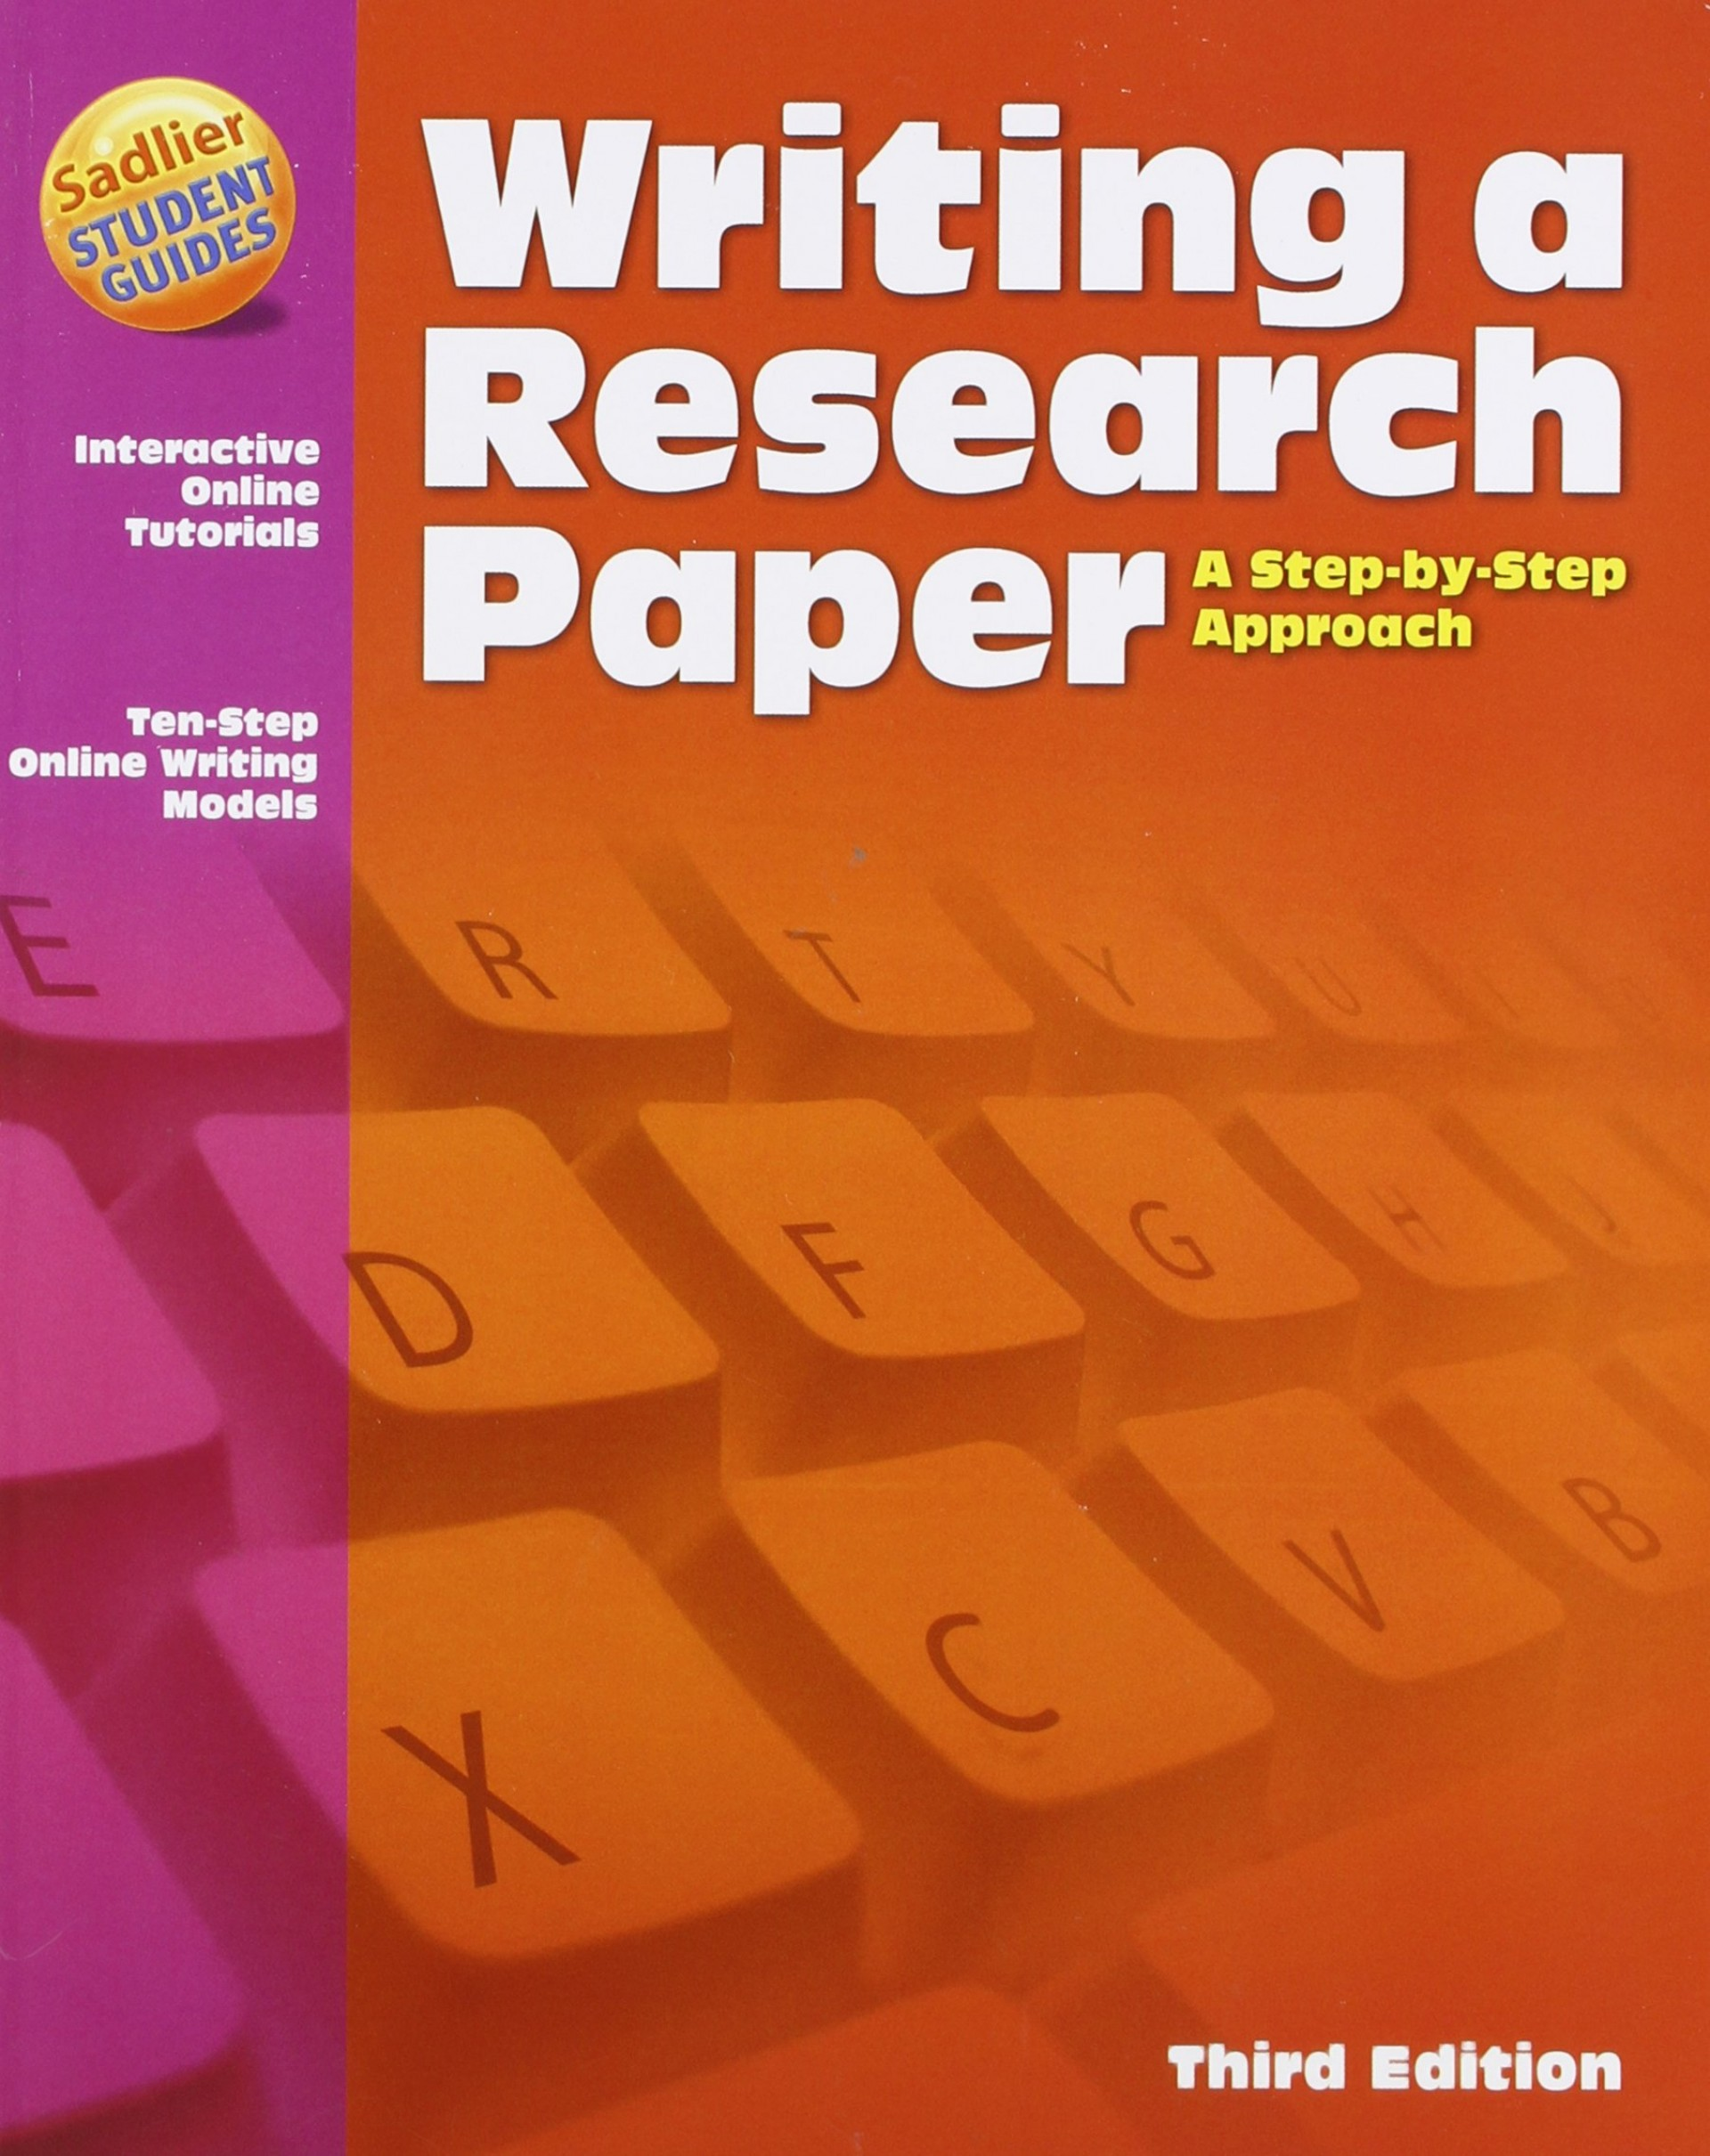 011 81uqfpthpml Help With Writing Researchs Fantastic Research Papers Assistance A Paper 1920